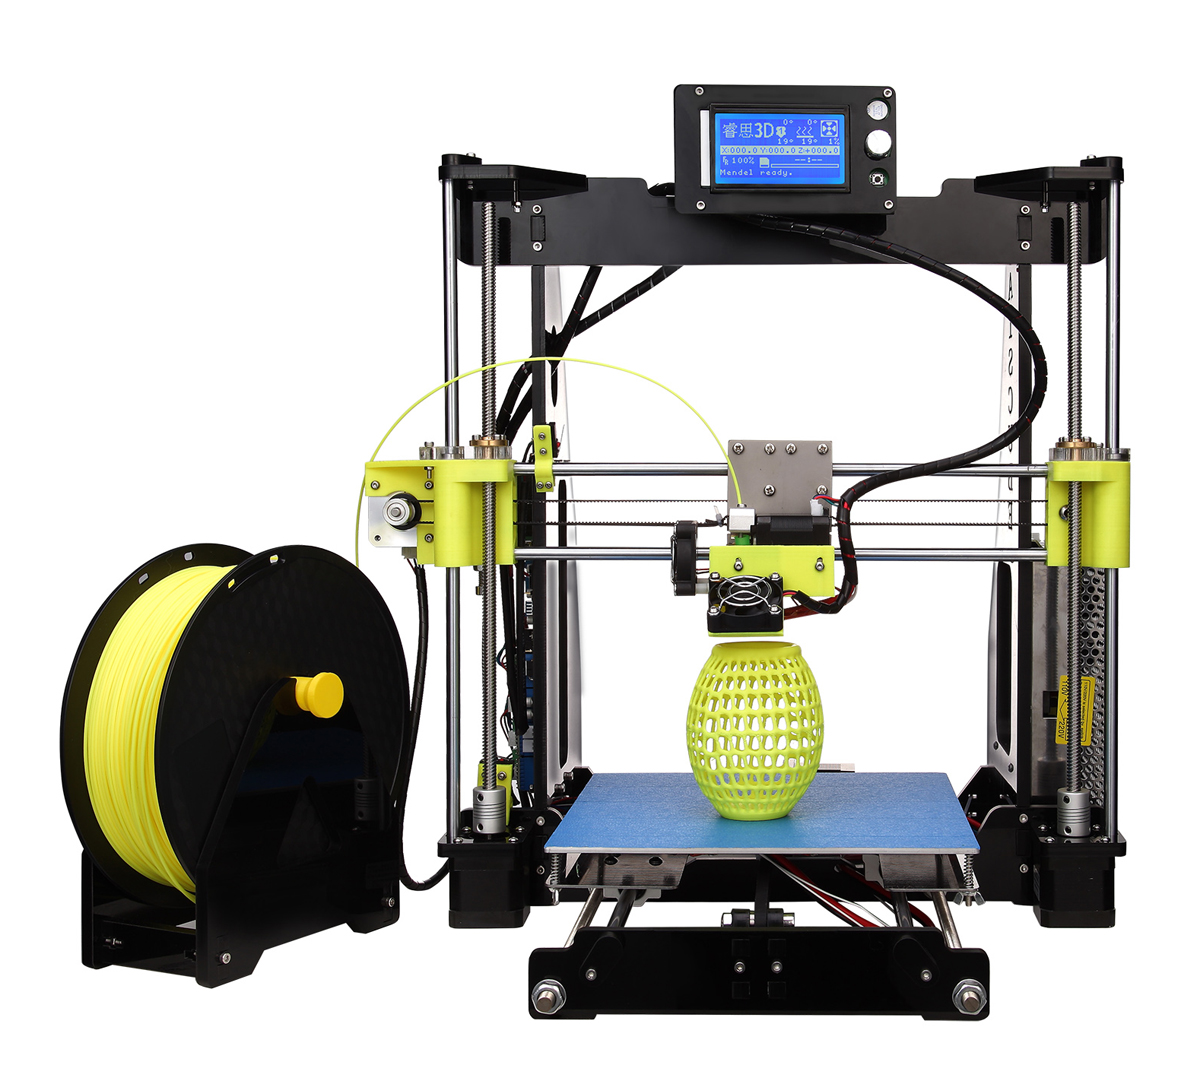 RAISCUBE R2 Prusa I3 DIY 3D Printer